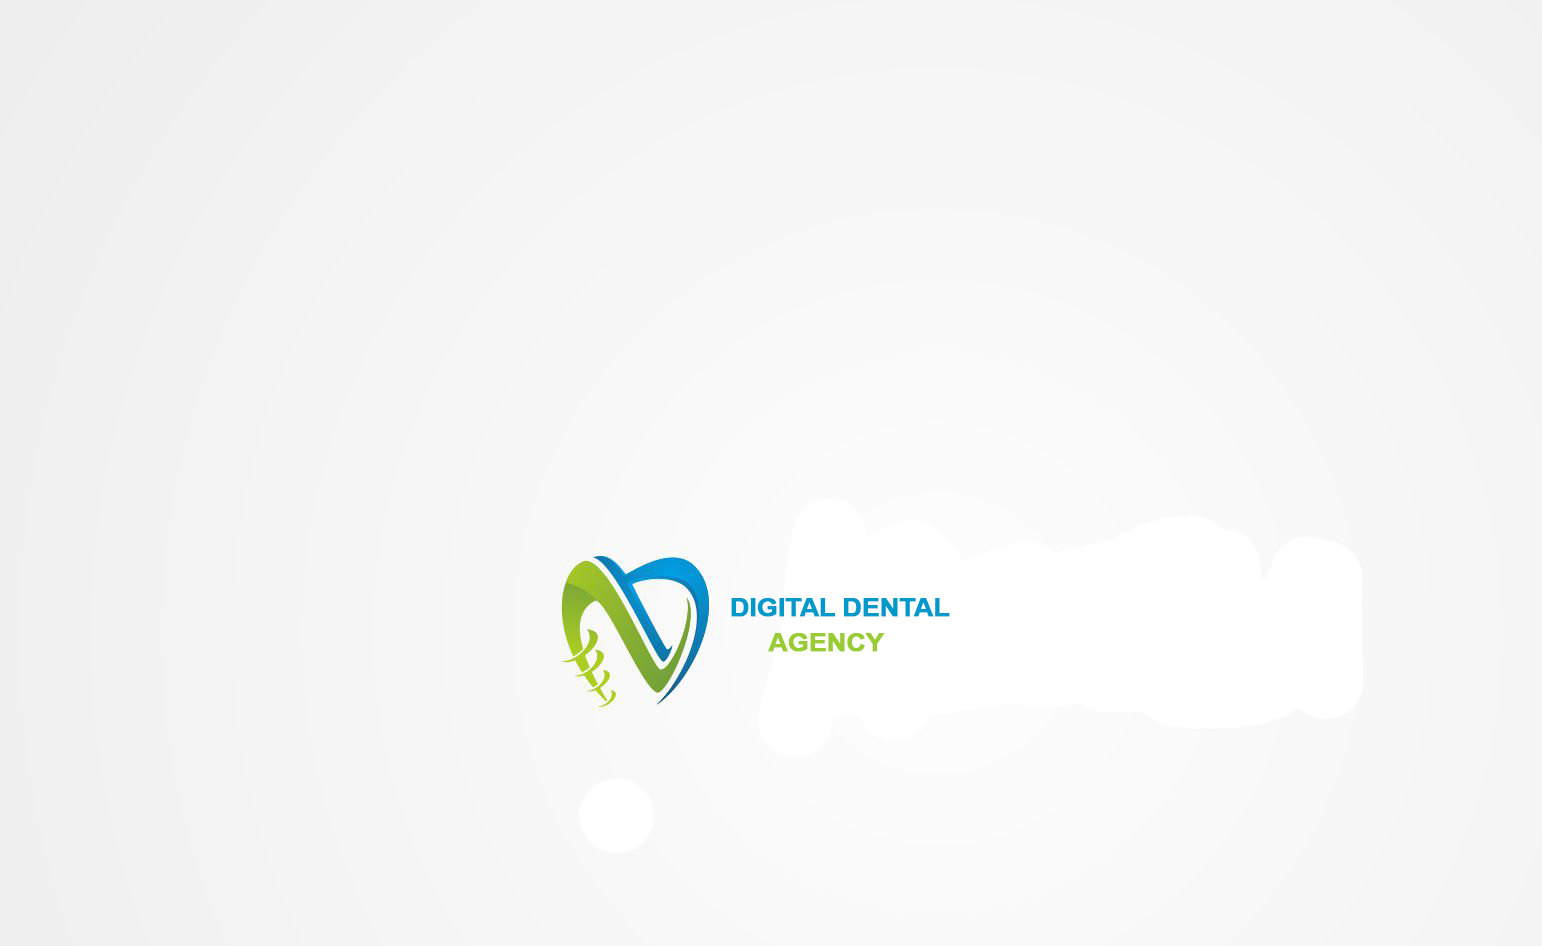 Logo Design by Serhat Doymuş - Entry No. 97 in the Logo Design Contest Imaginative Logo Design for Digital Dental Agency.